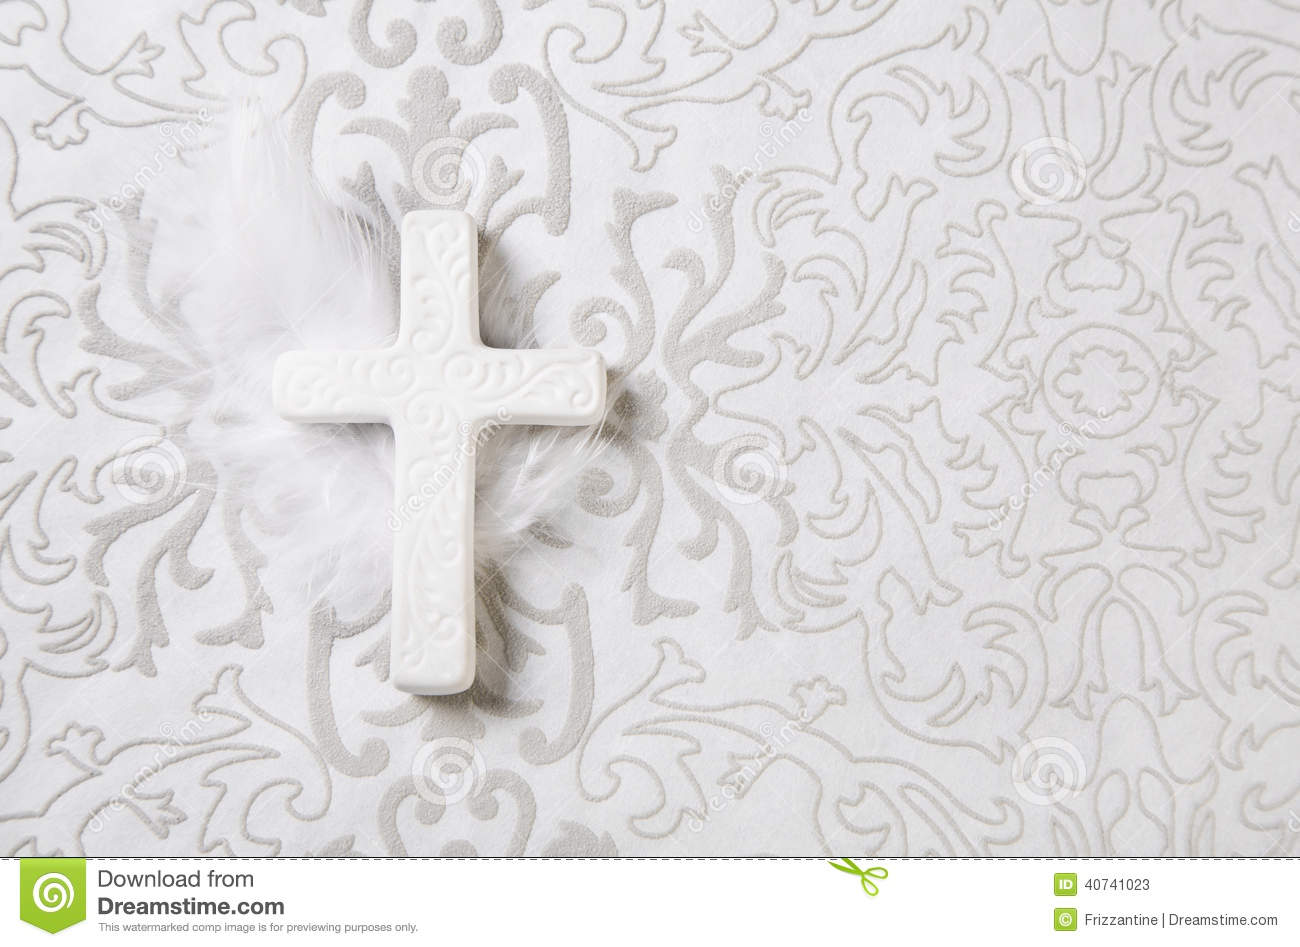 Obituary Background with Cross